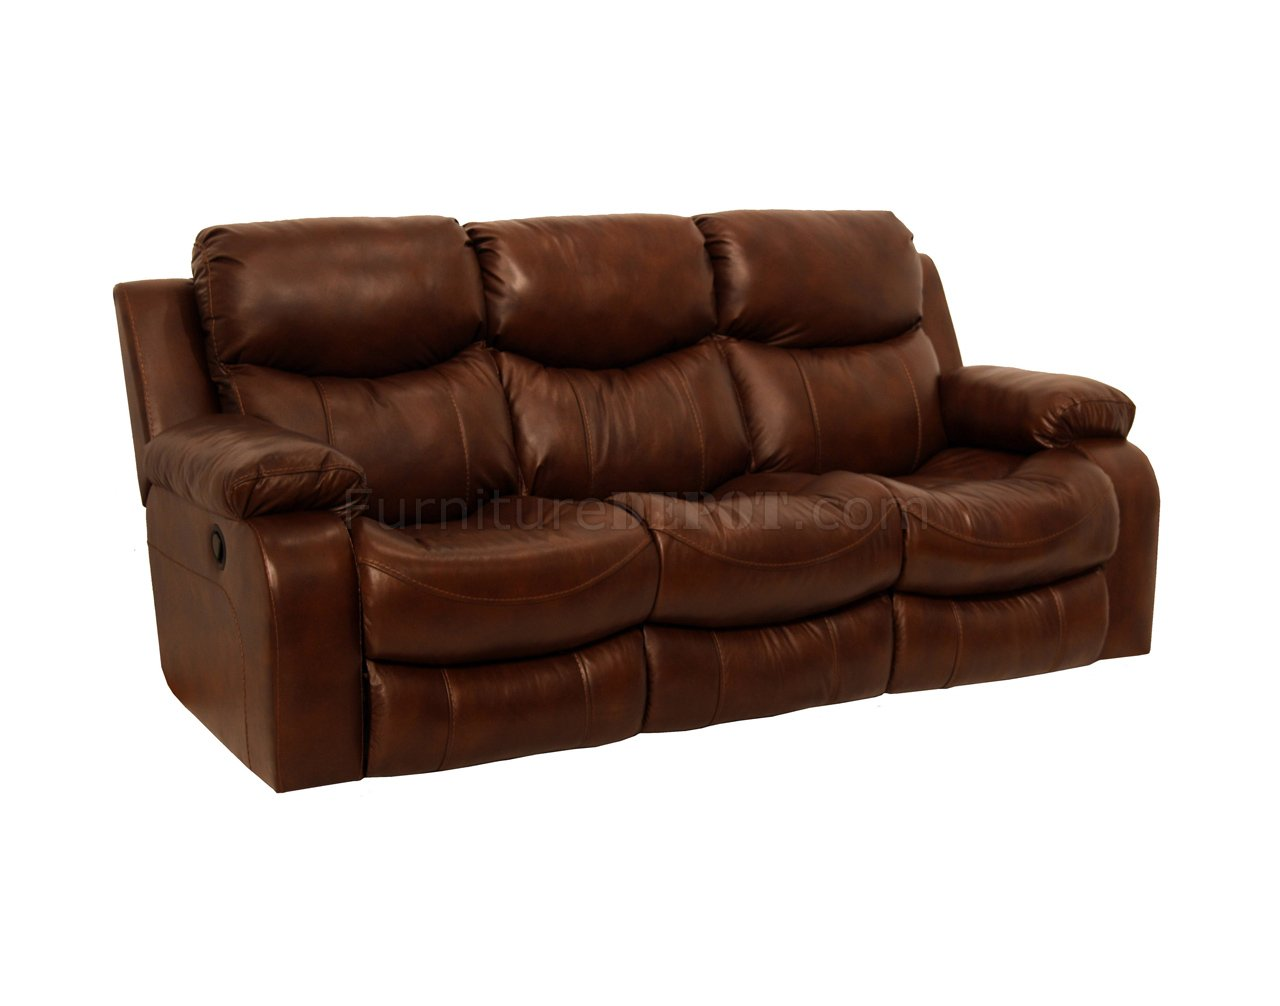 Catnapper Tobacco Top Grain Leather Dallas Motion Sofa W Options